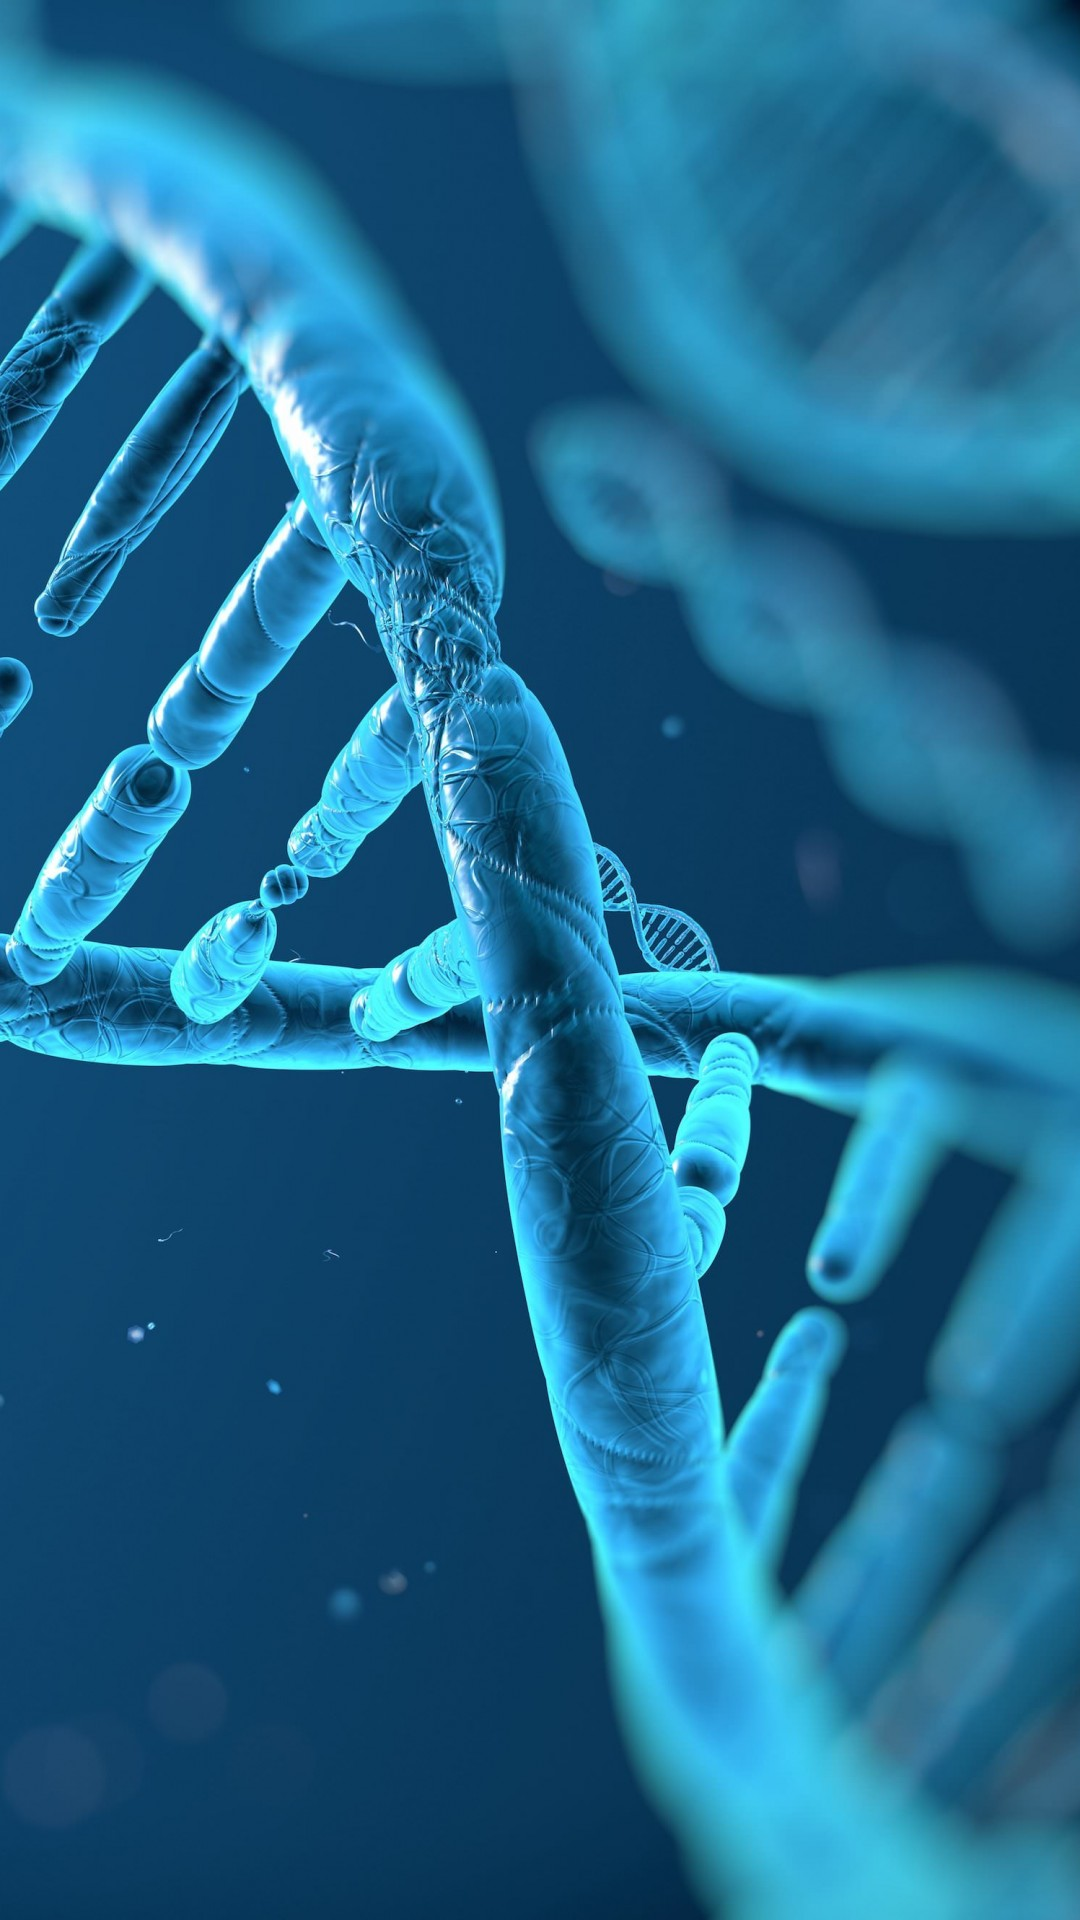 DNA Structure Wallpaper for HTC One